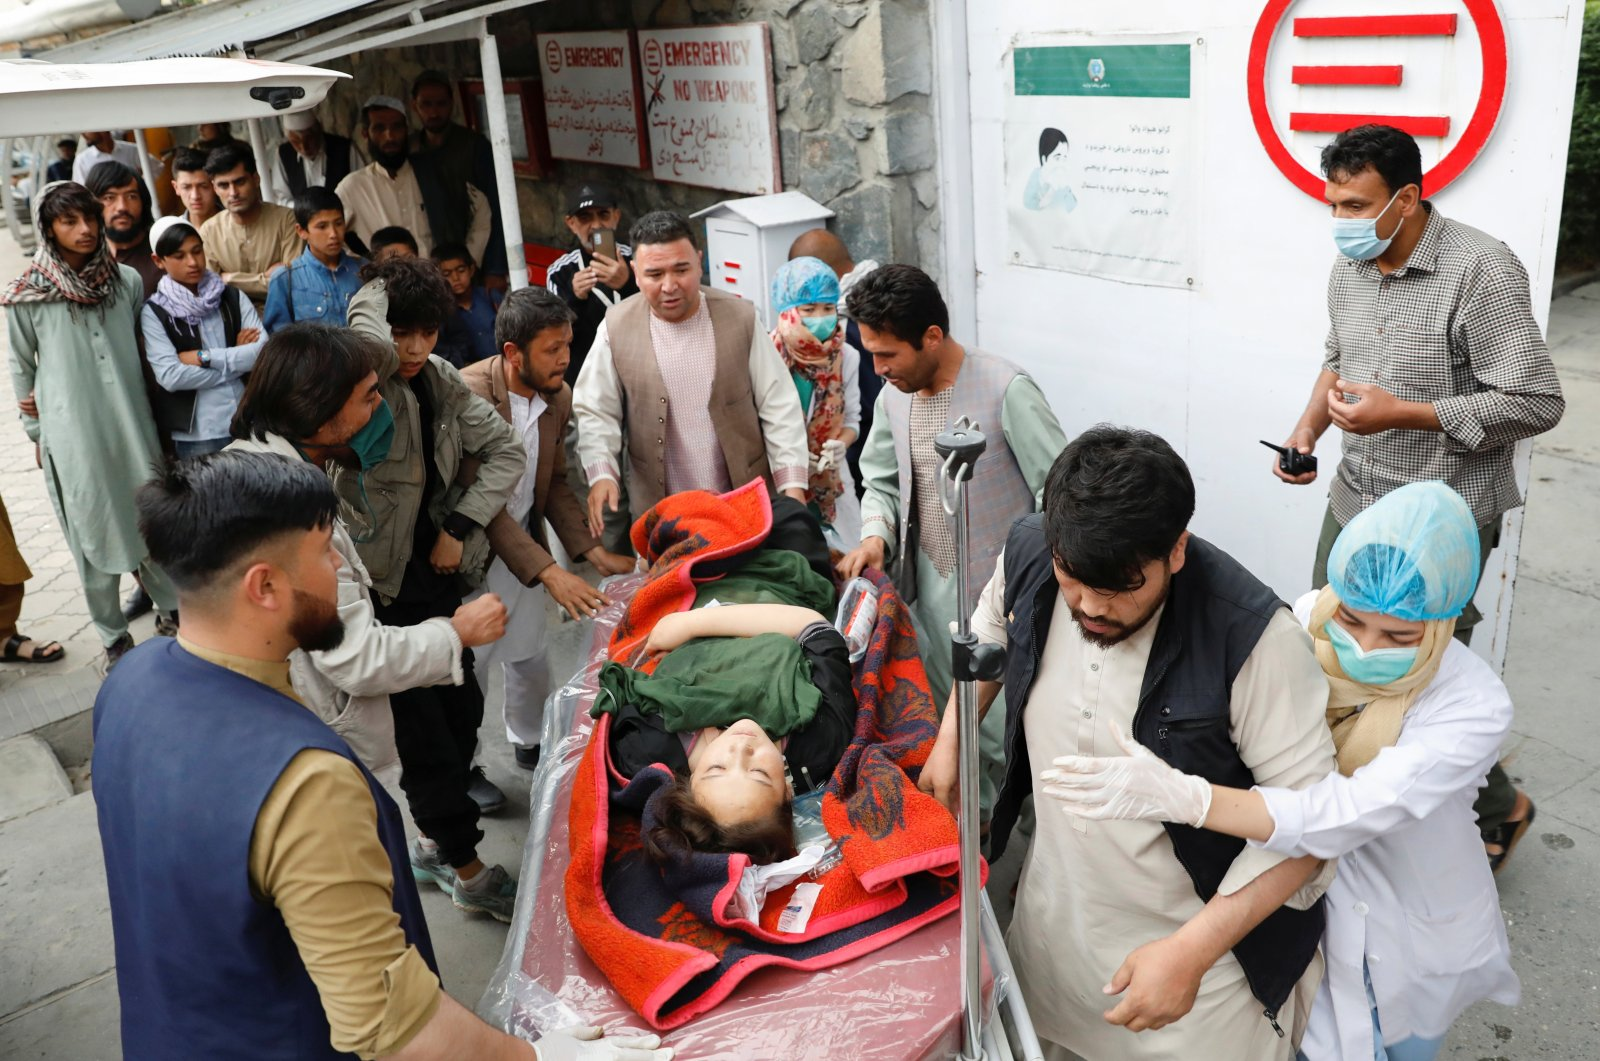 An injured woman is transported to a hospital after a blast in Kabul, Afghanistan, May 8, 2021. (Reuters Photo)